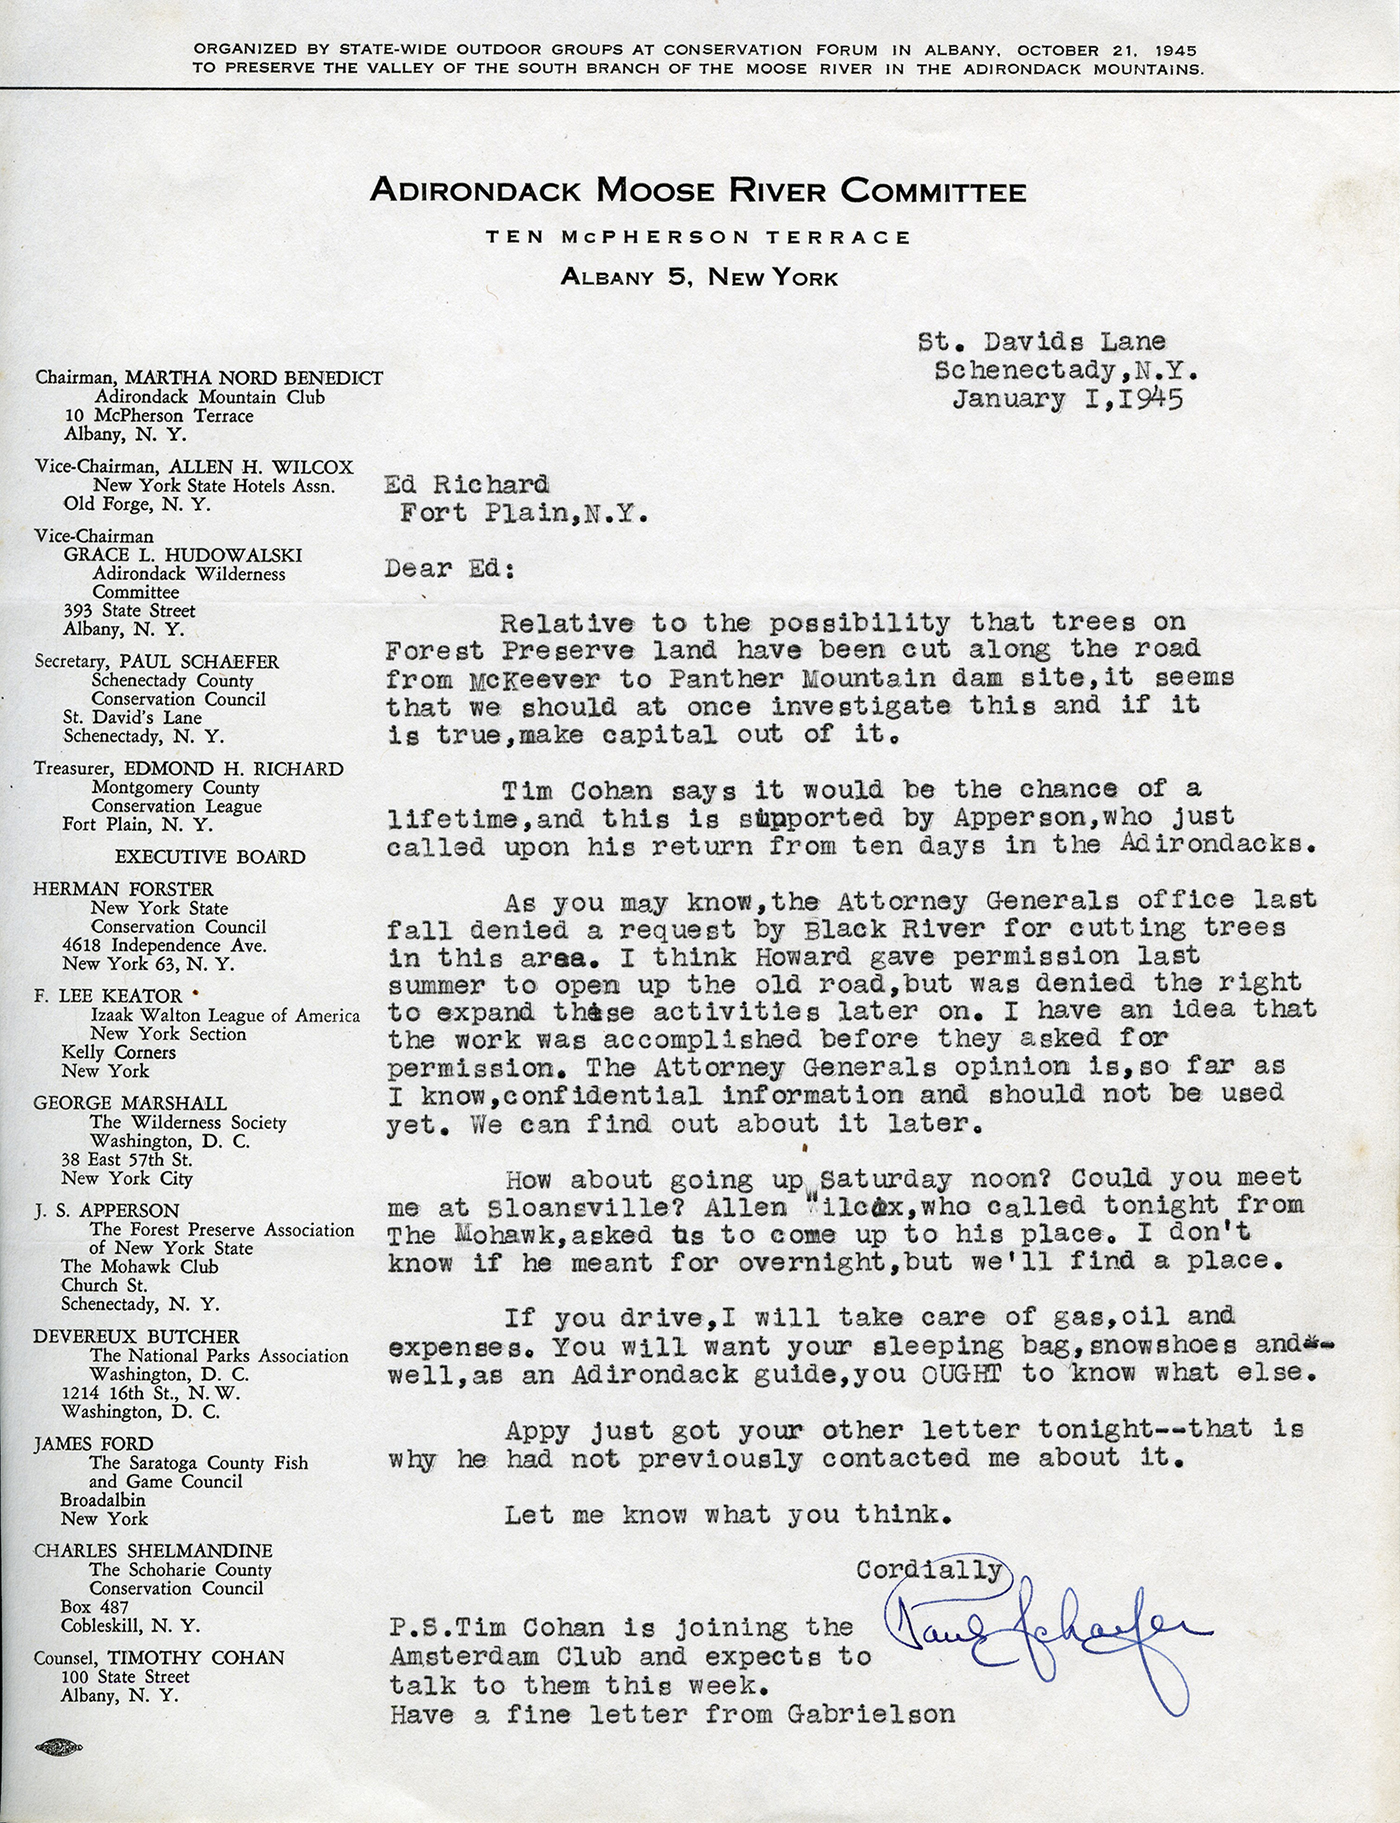 "Paul Schaefer writes to Ed Richards on January 1, 1945 about illegal lumbering occurring inside the Forest Preserve in preparation for the Panther Mountain Dam construction and references speaking to Apperson (""Appy"") about the issue."